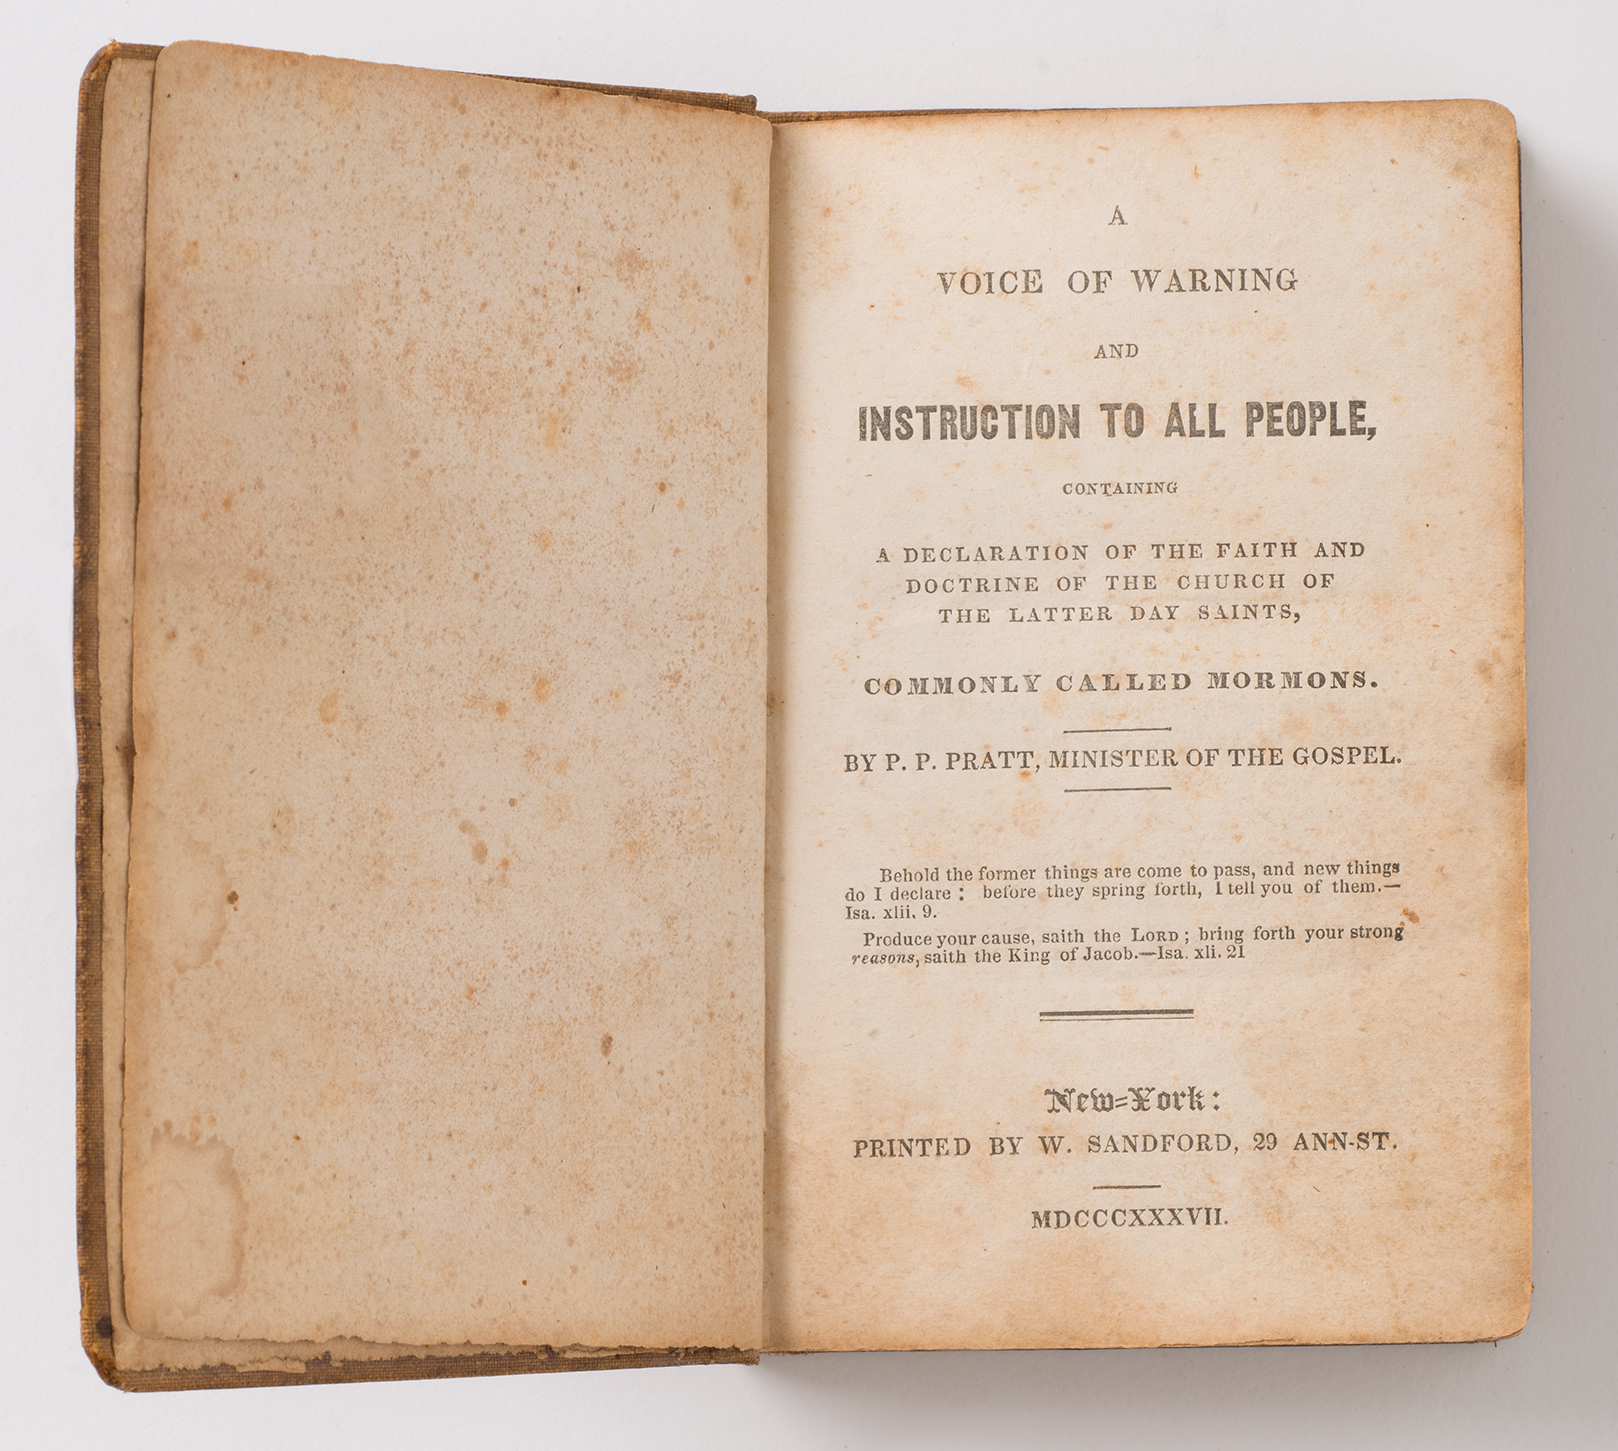 A Voice of Warning title page